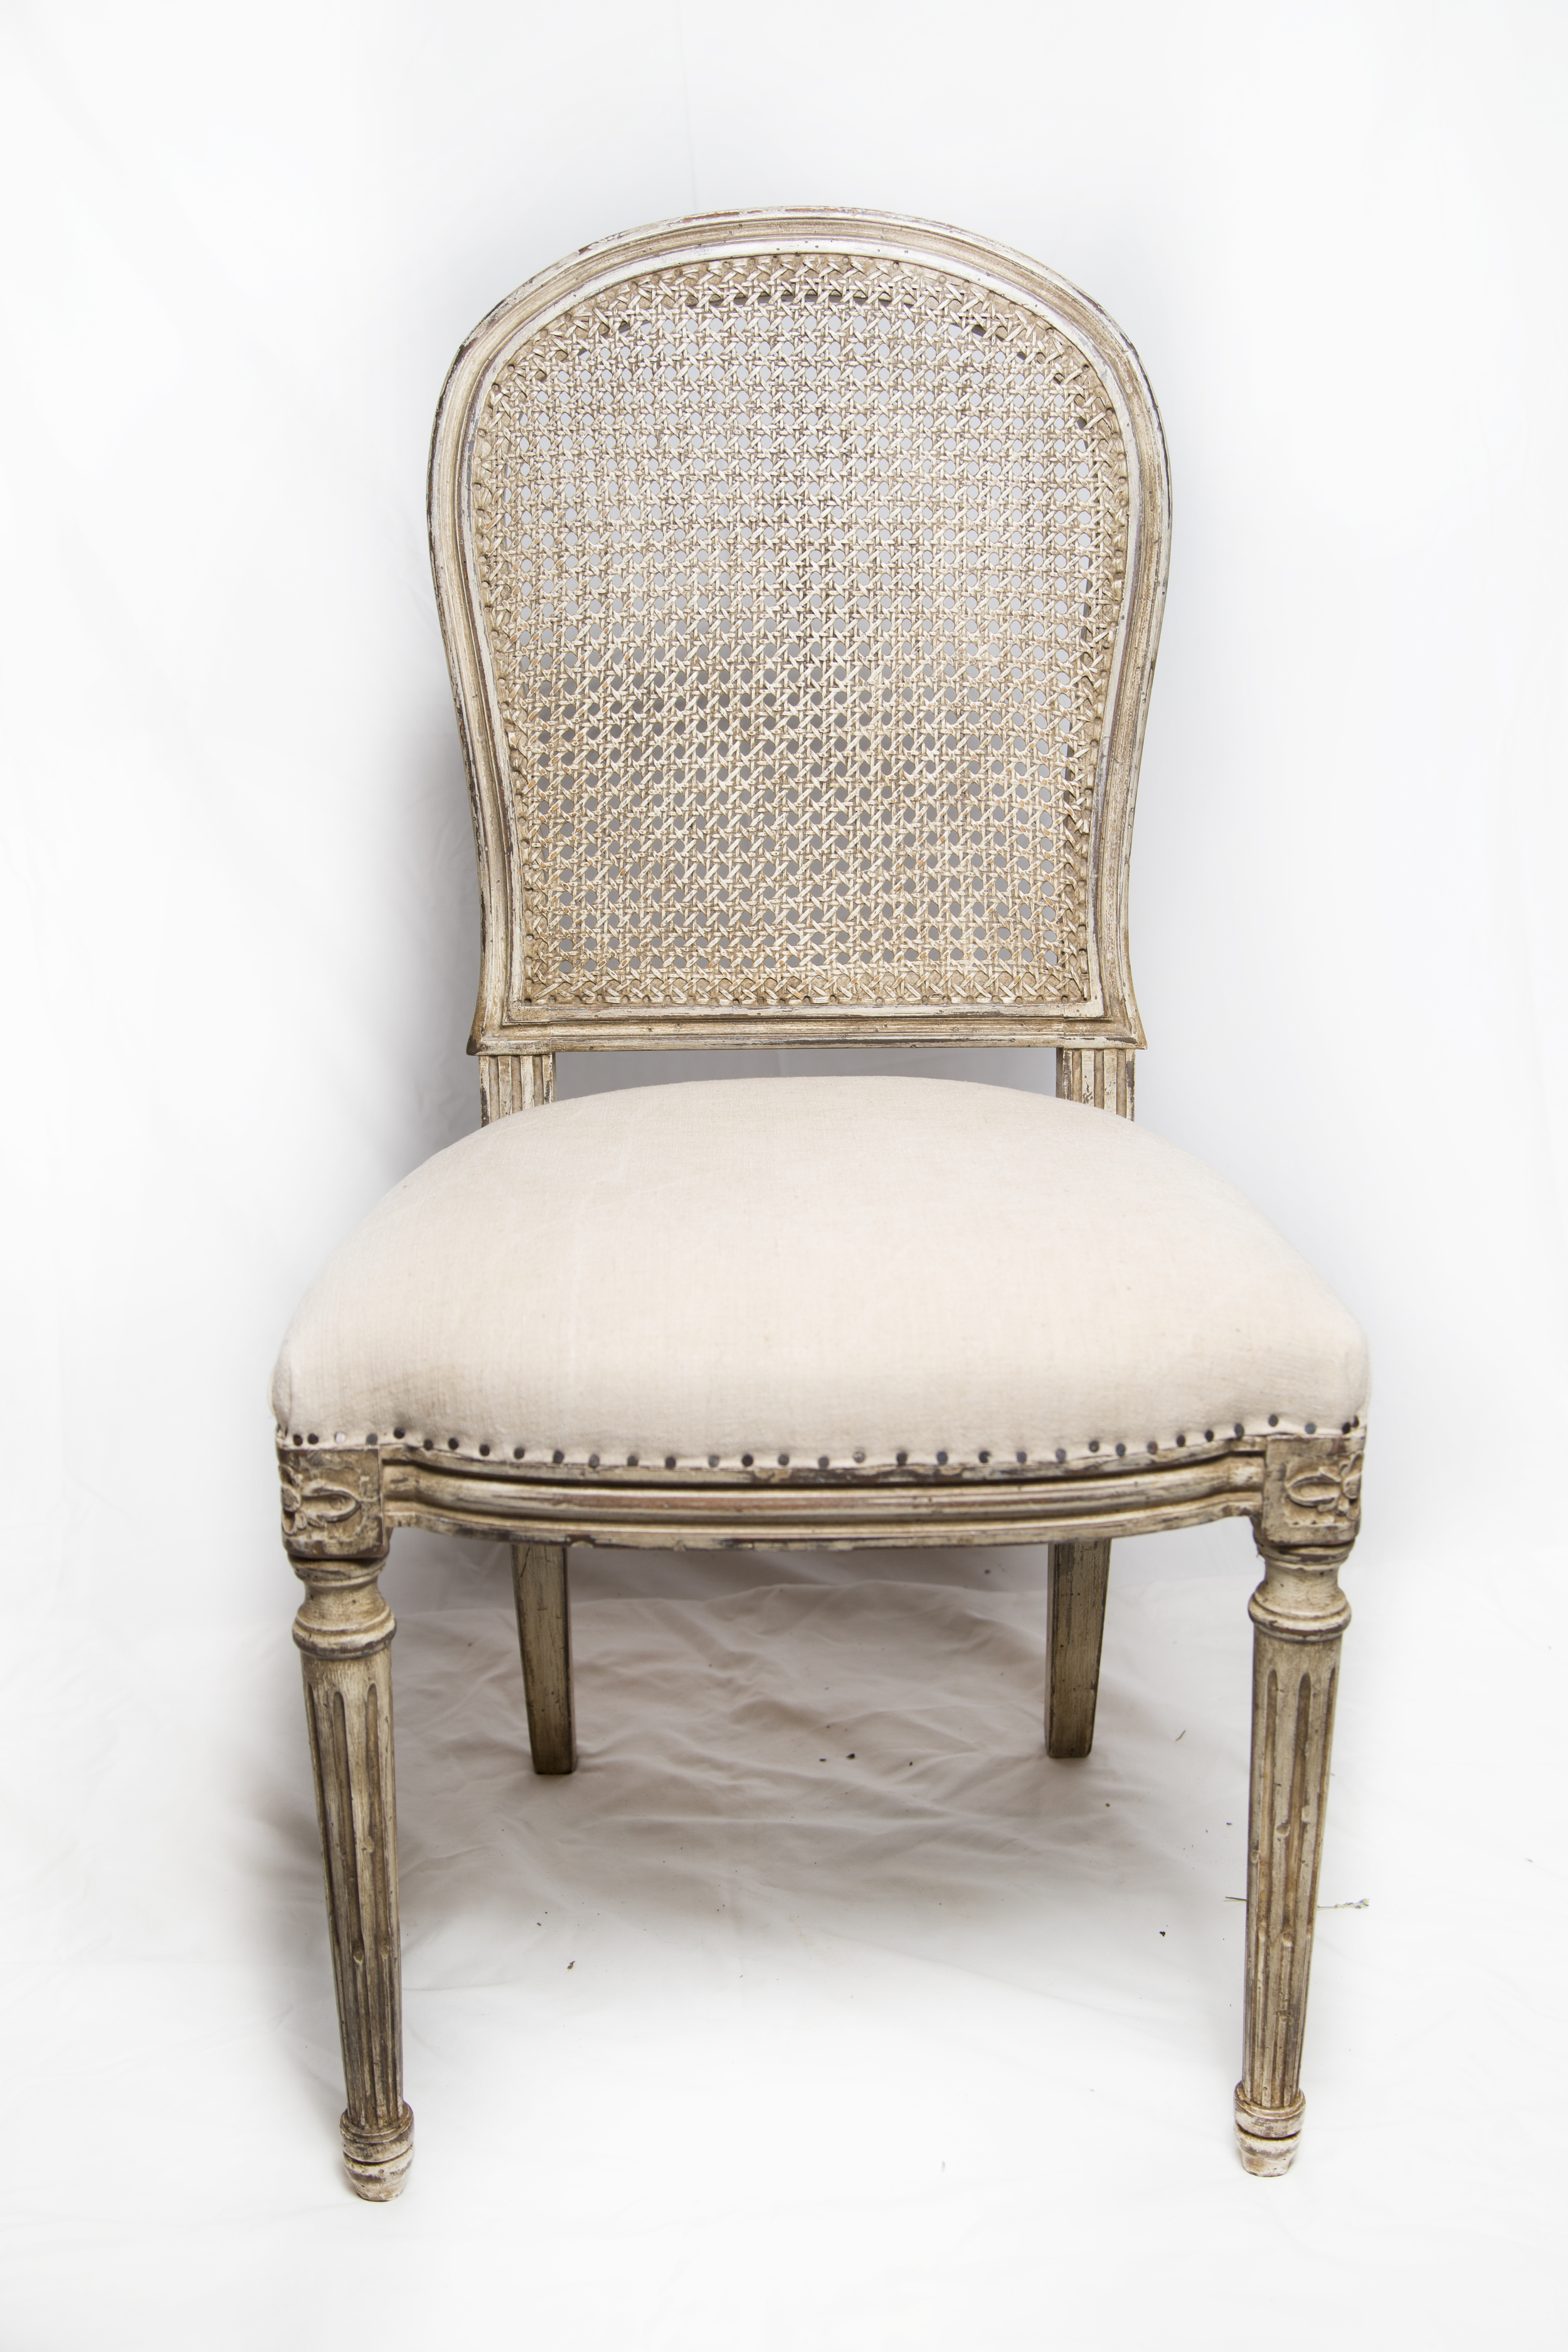 One of six Parisian chairs we found in Les Puces in Paris. Love this finish!